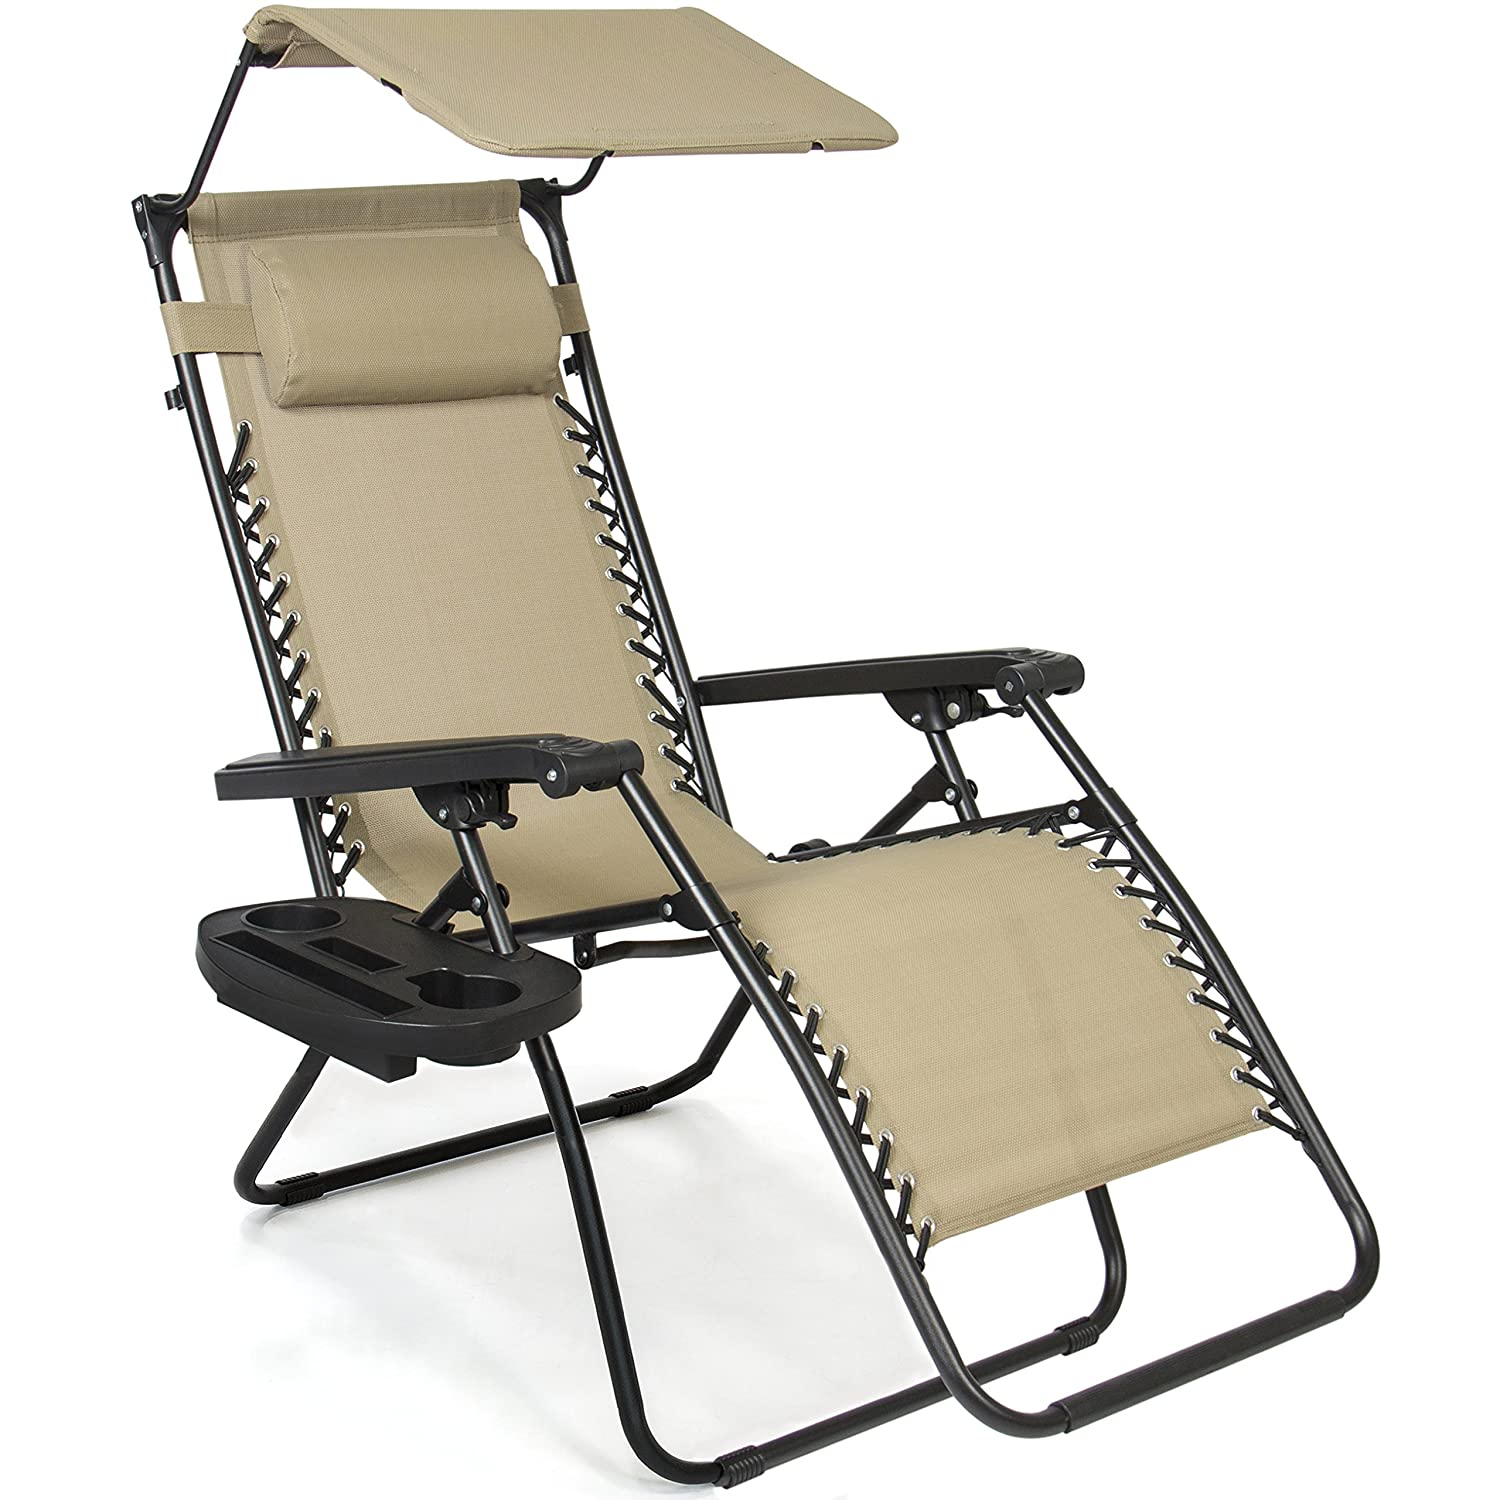 Best Choice Products Folding Zero Gravity Recliner Lounge Chair w Adjustable Canopy Shade, Cup Holder Accessory Tray, Headrest Pillow – Beige